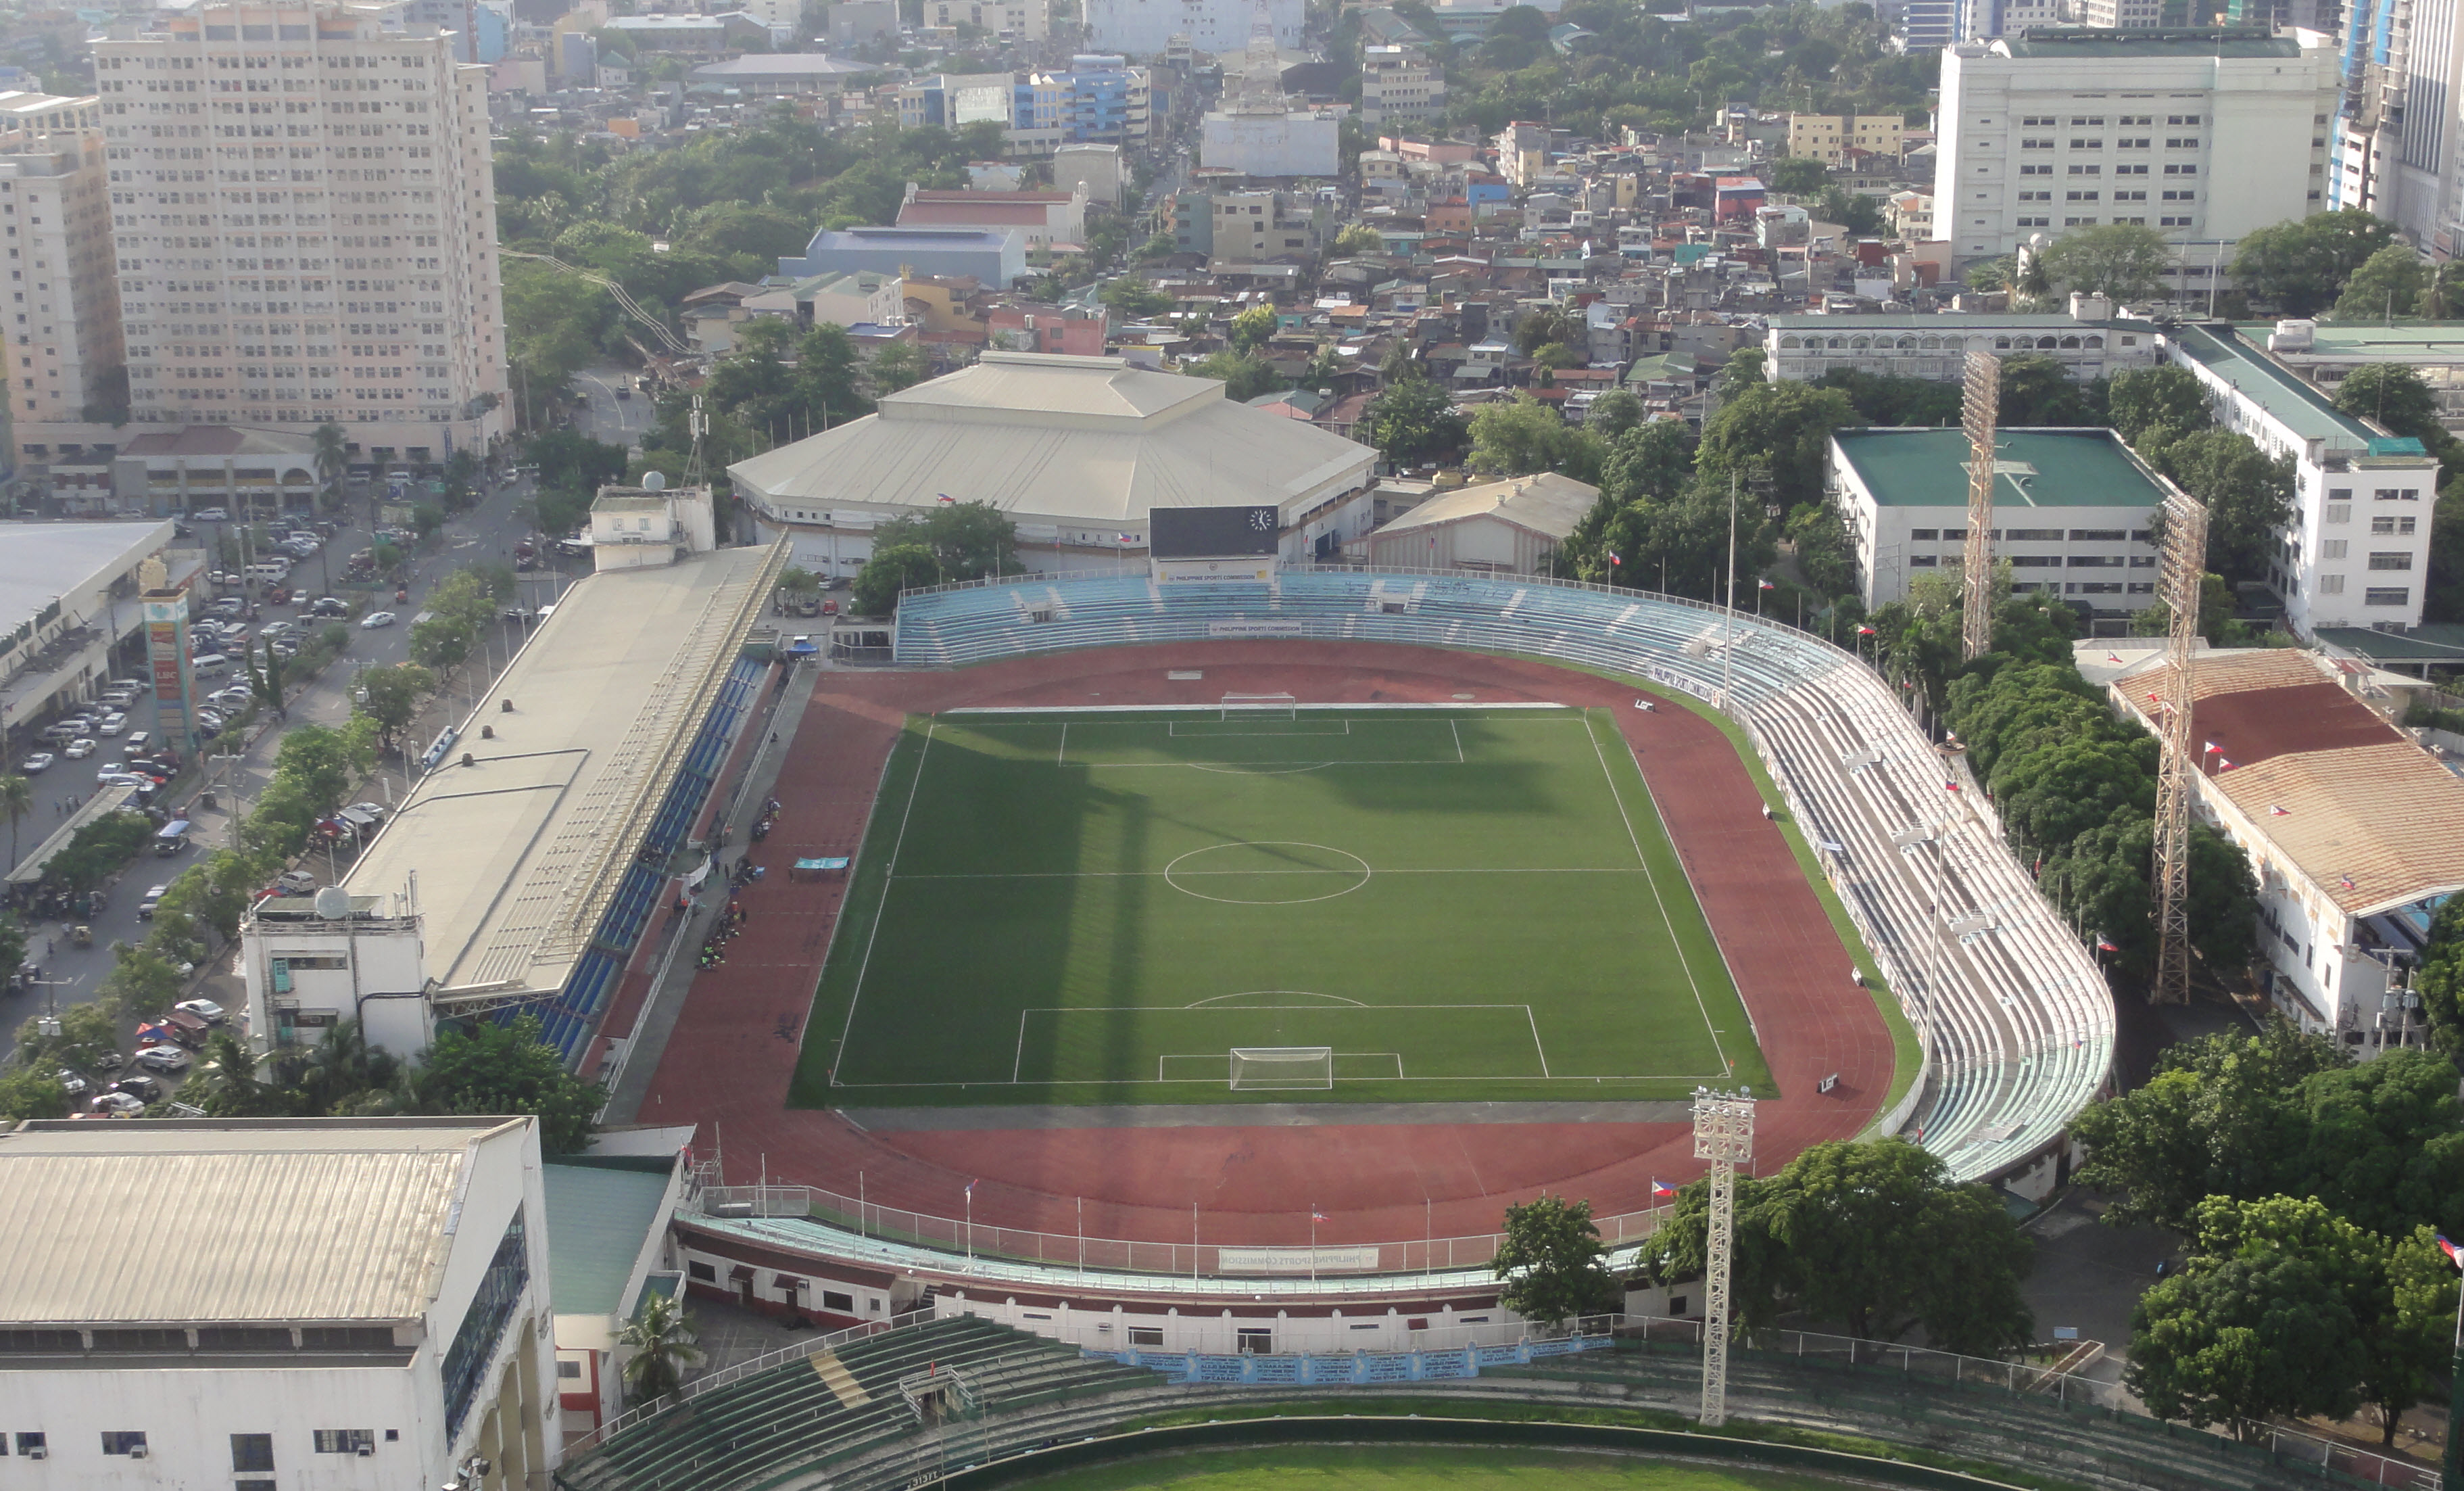 Estadio Memorial Rizal Manila Filipinas Patrick Roque